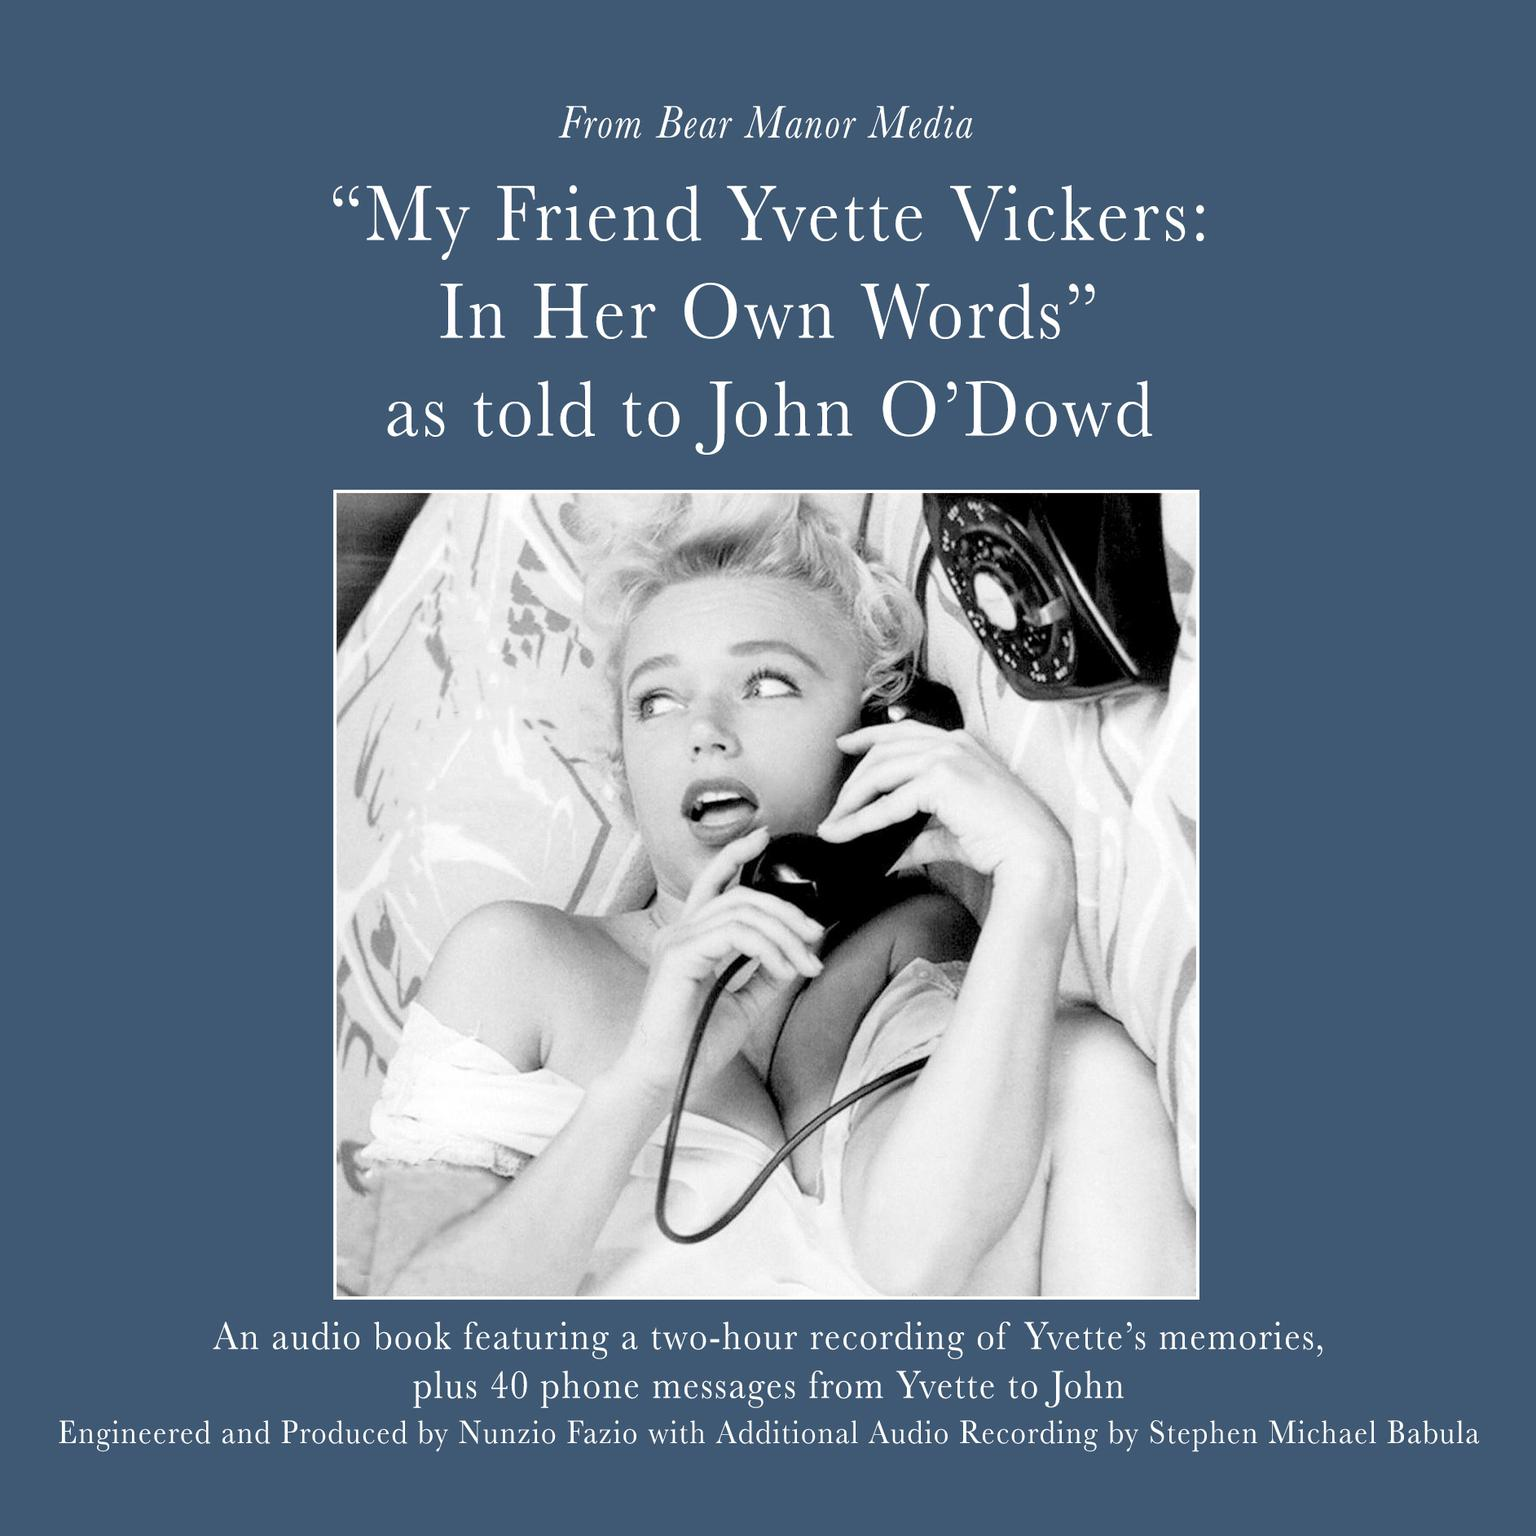 My Friend, Yvette Vickers: In Her Own Words, as told to John O'Dowd Audiobook, by Yvette Vickers